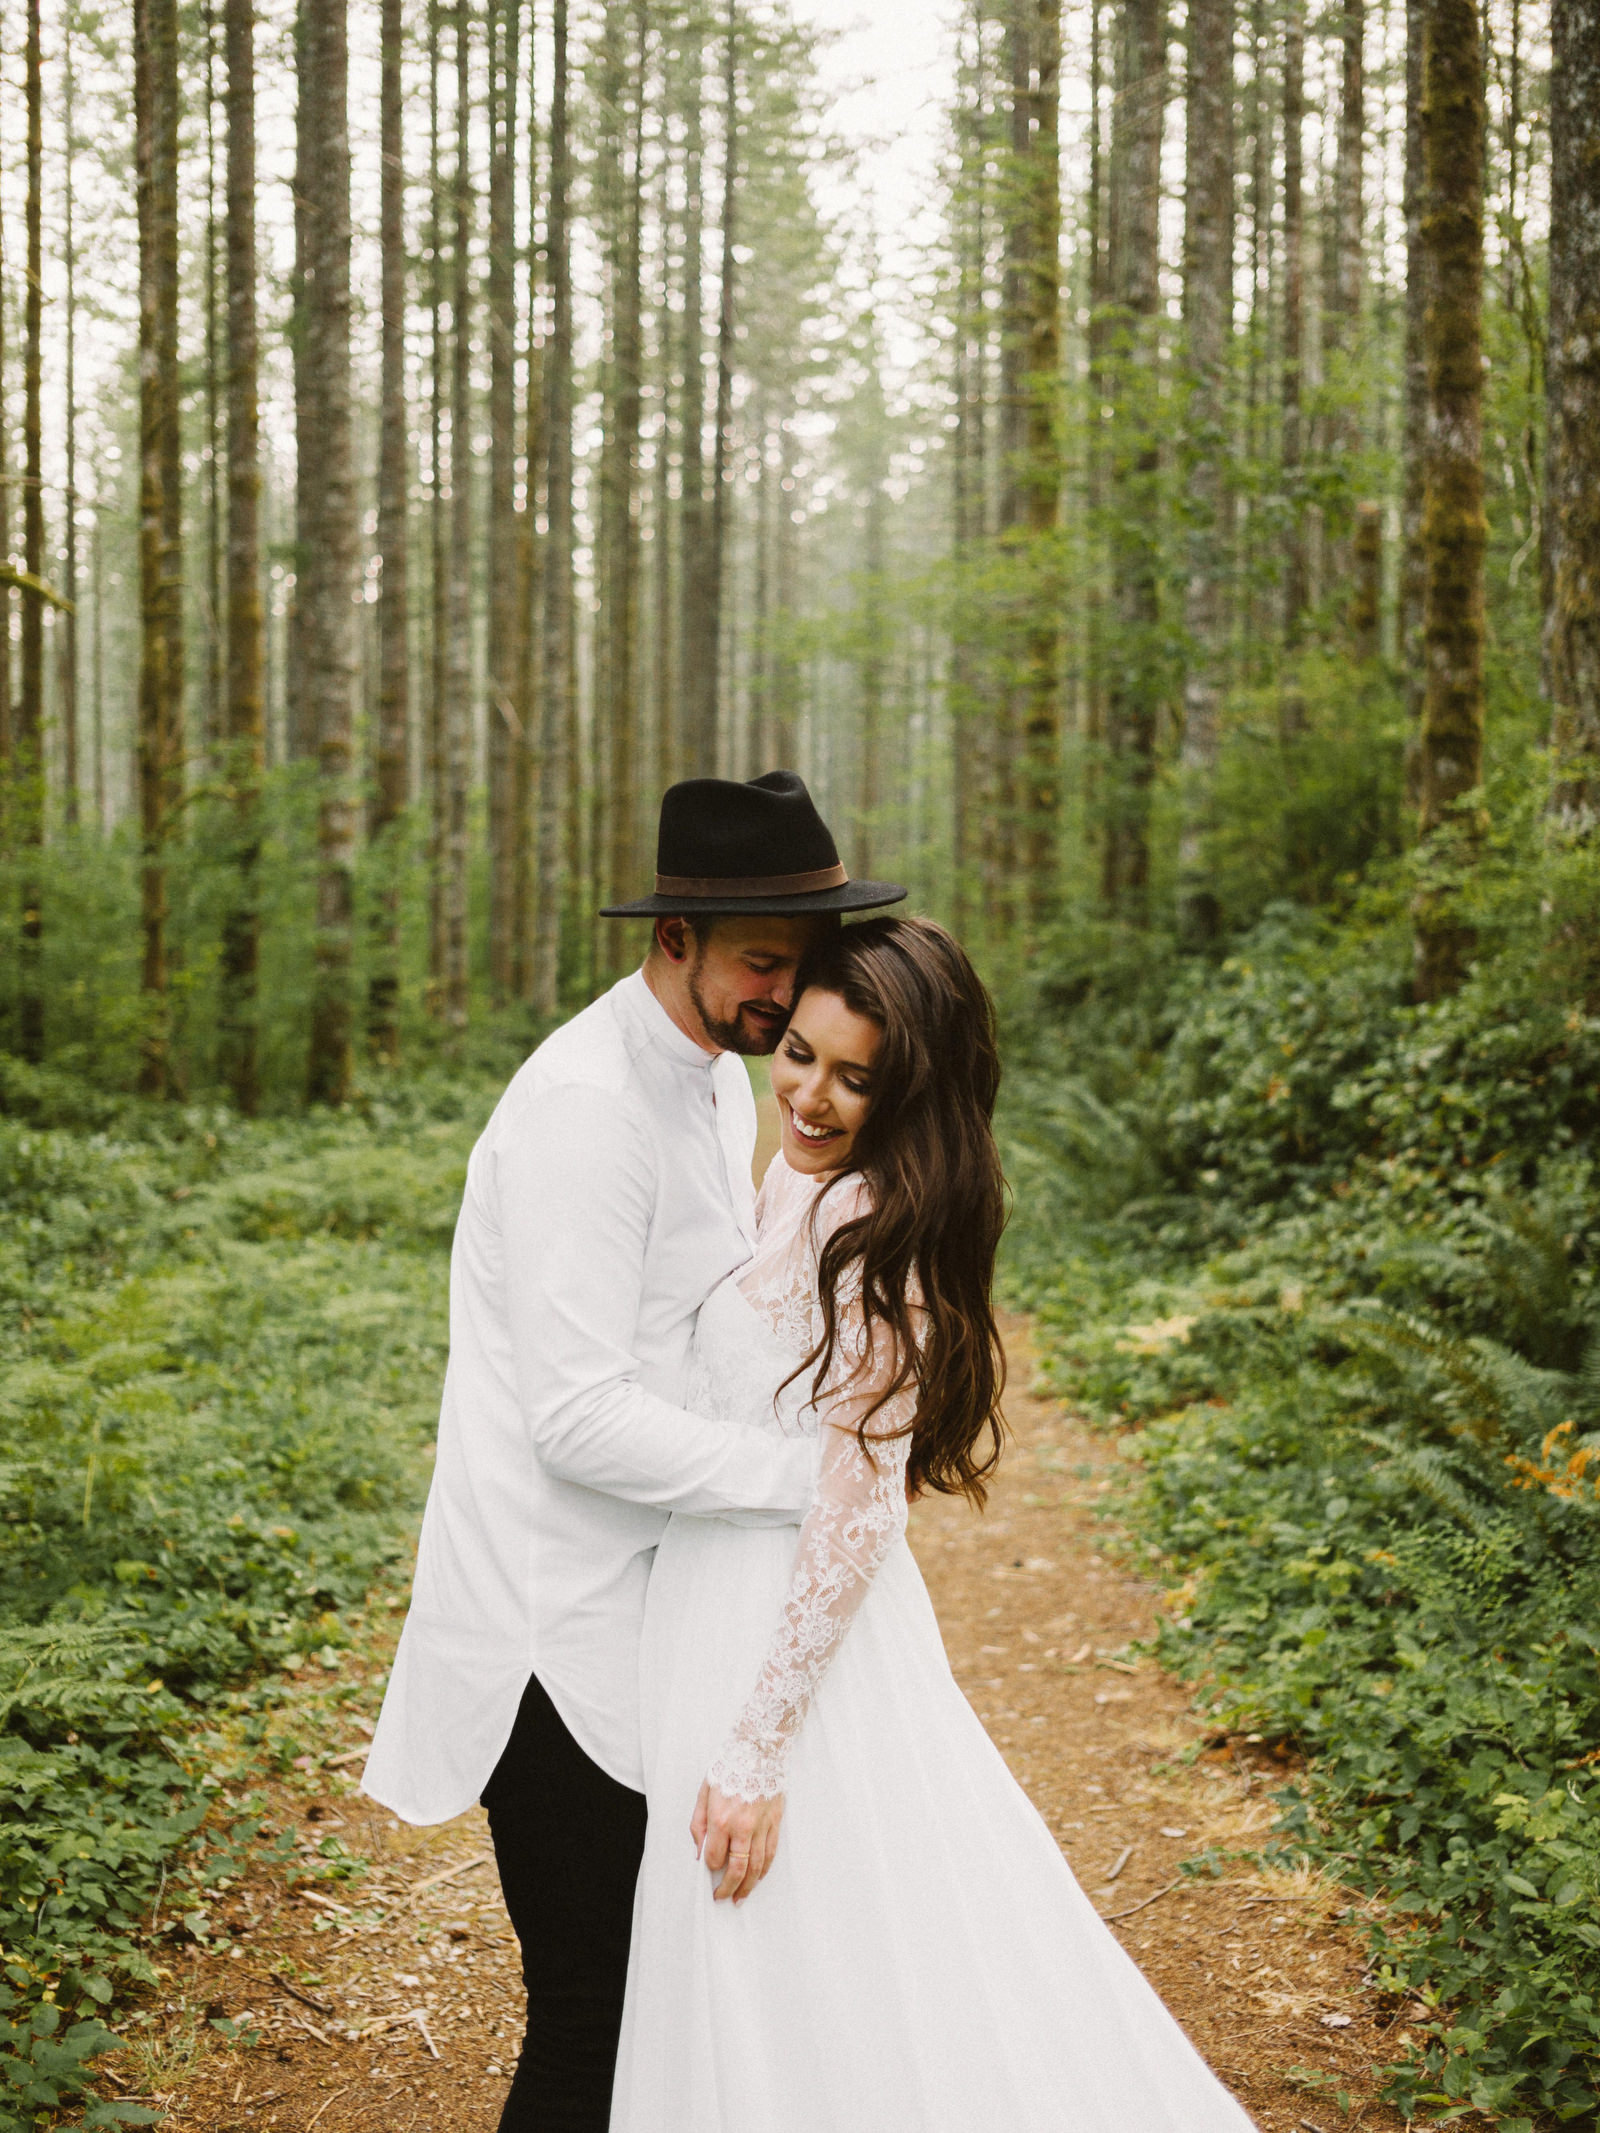 athena-and-camron-seattle-elopement-wedding-benj-haisch-rattlesnake-lake-christian-couple-goals17